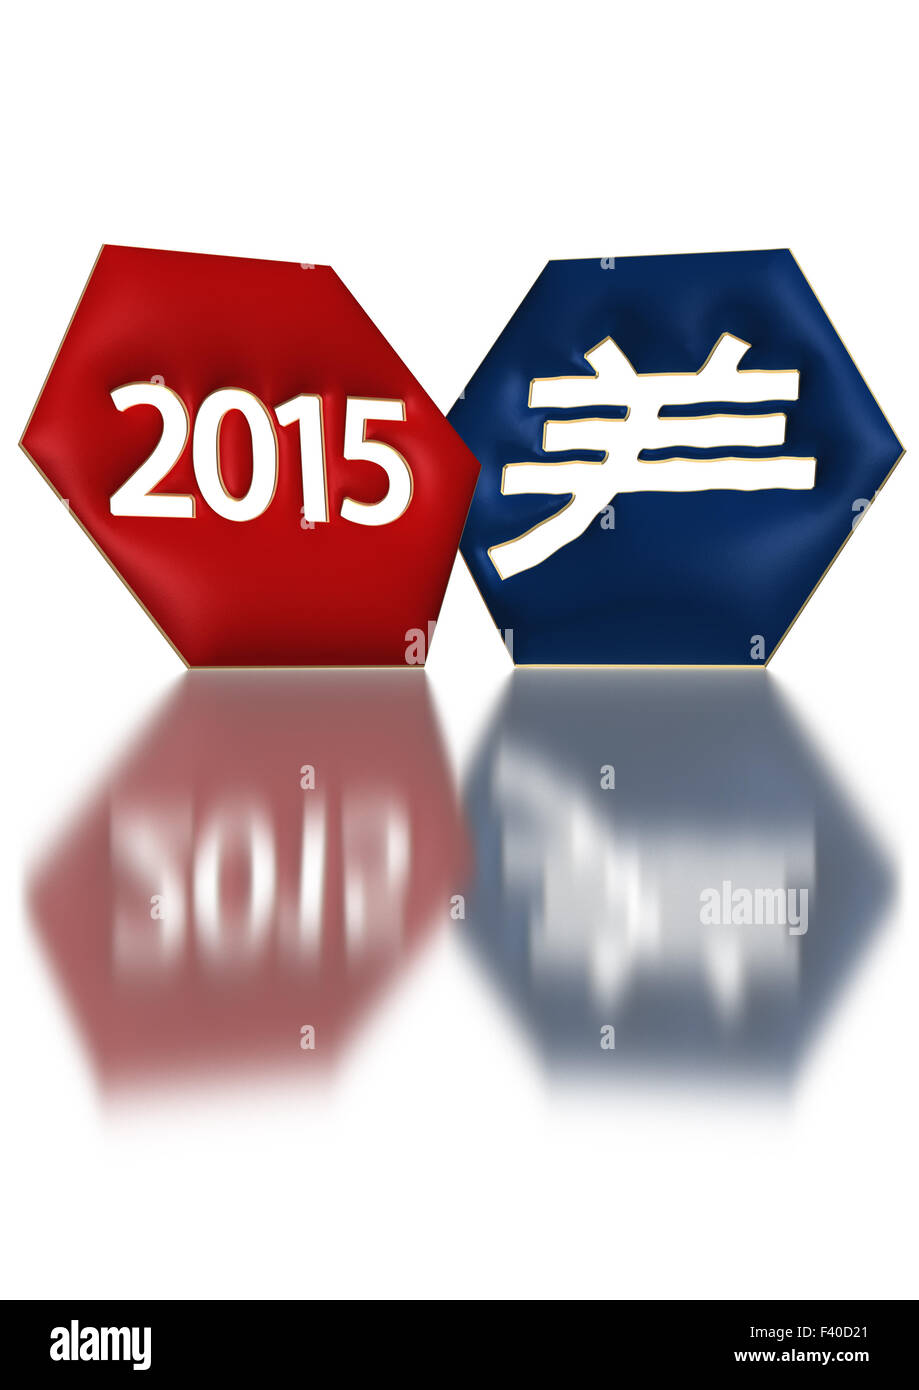 2015 Year of the goat. - Stock Image